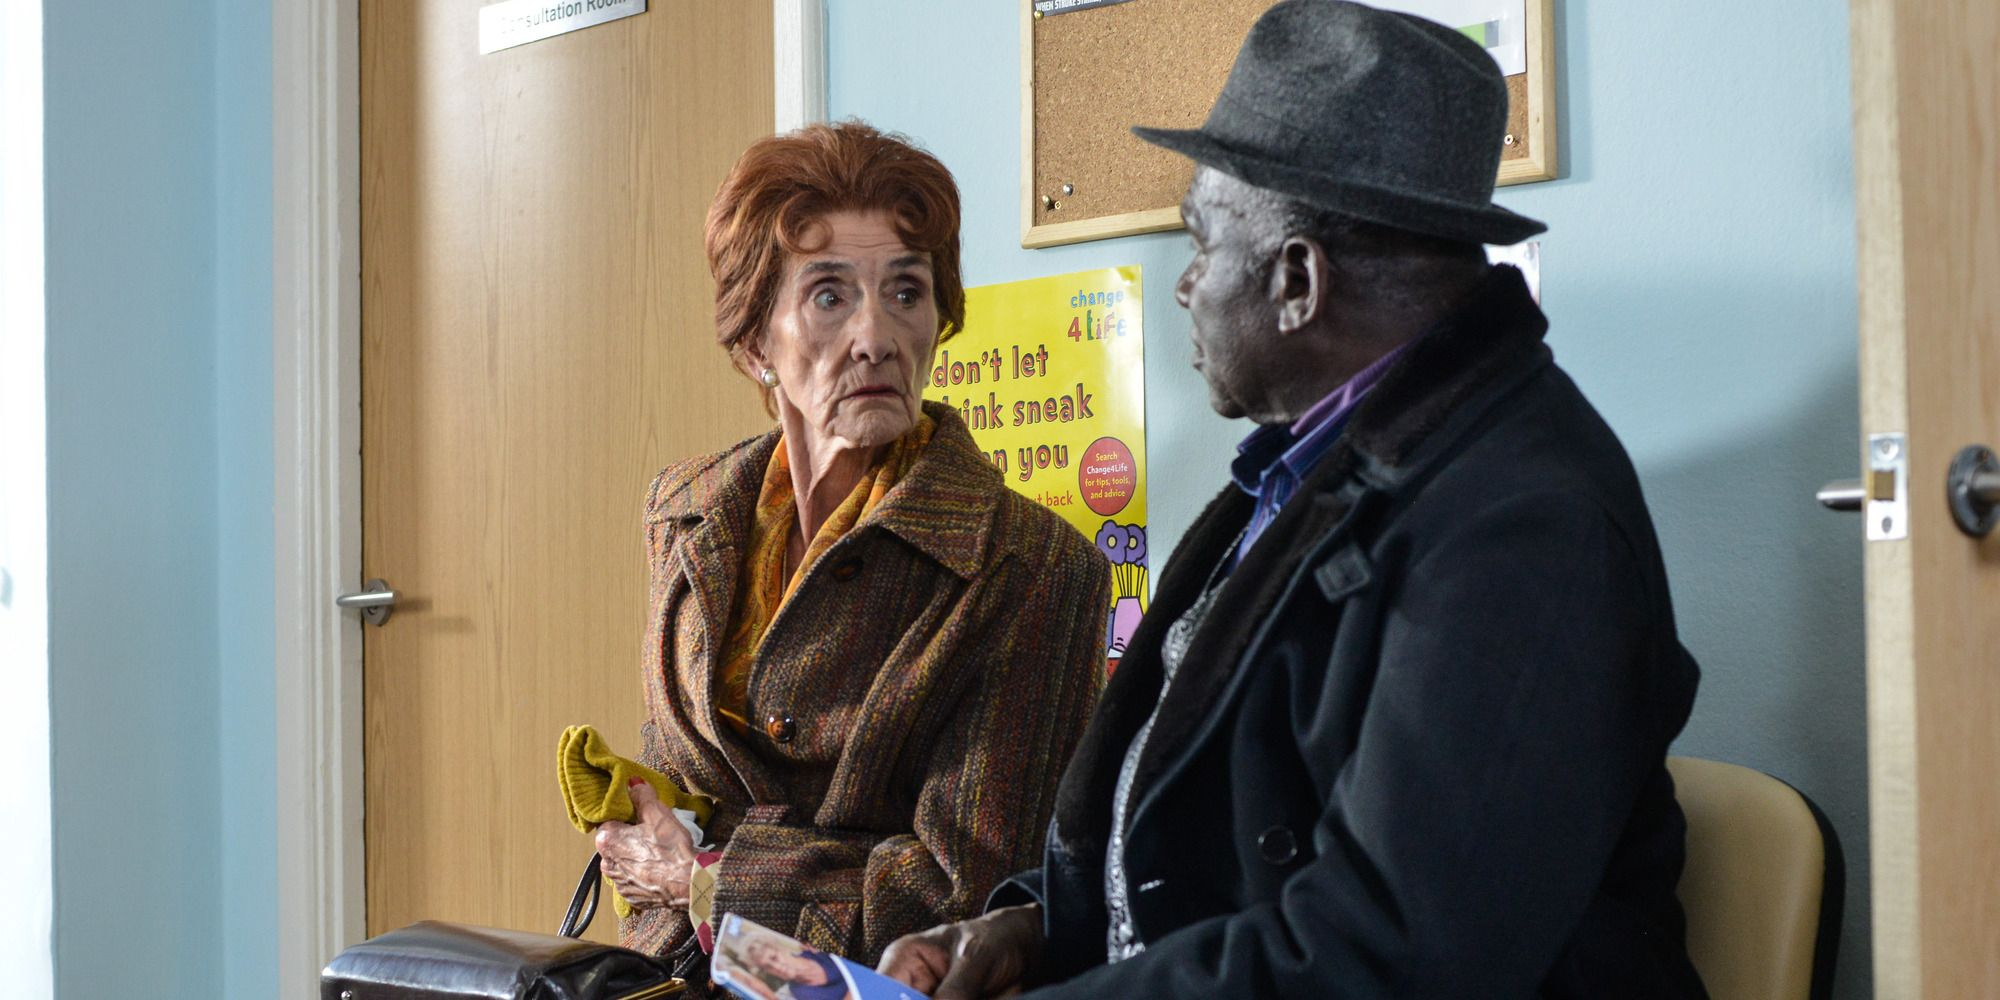 Patrick Trueman joins Dot Branning as she attends her doctors appointment in EastEnders